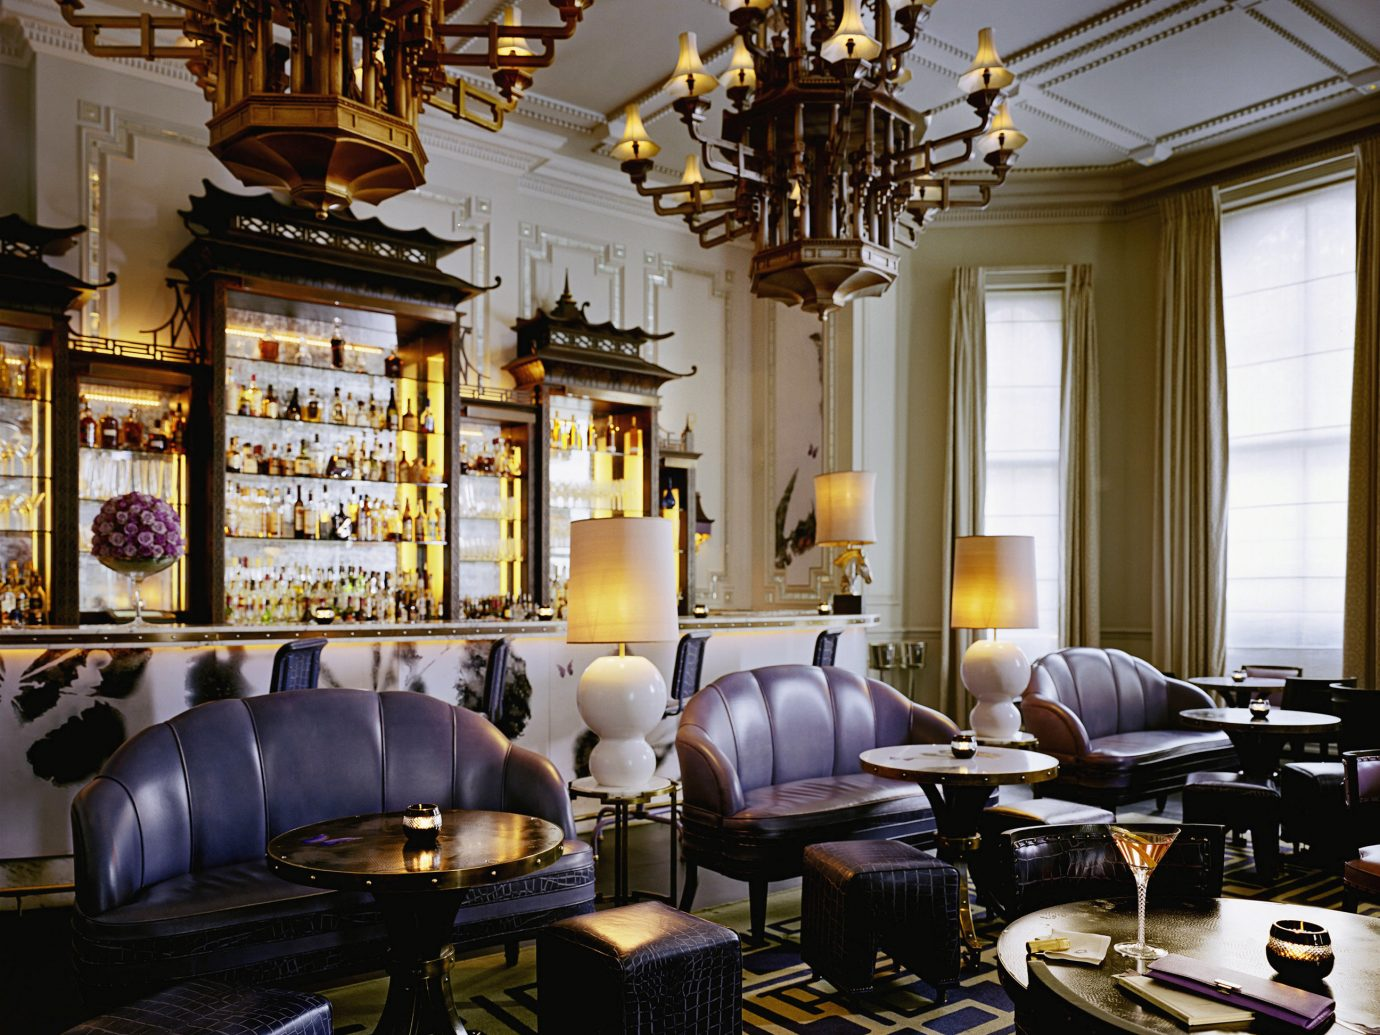 Bar Dining Drink Eat Elegant Food + Drink Historic Luxury indoor window room Living building interior design dining room living room estate Lobby home lighting restaurant Design furniture cluttered several